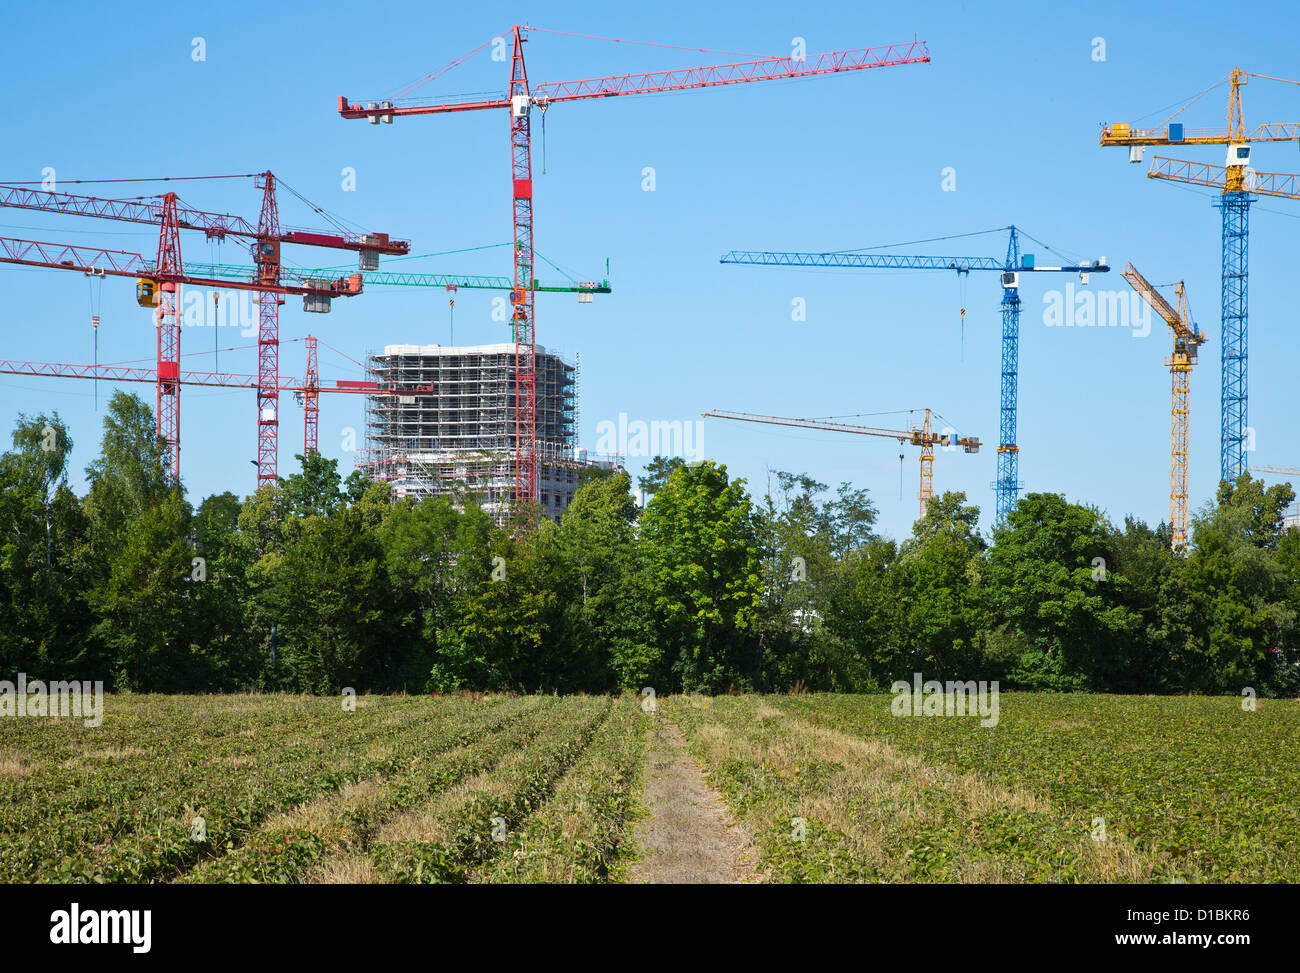 Cranes on a construction site near a field - Stock Image